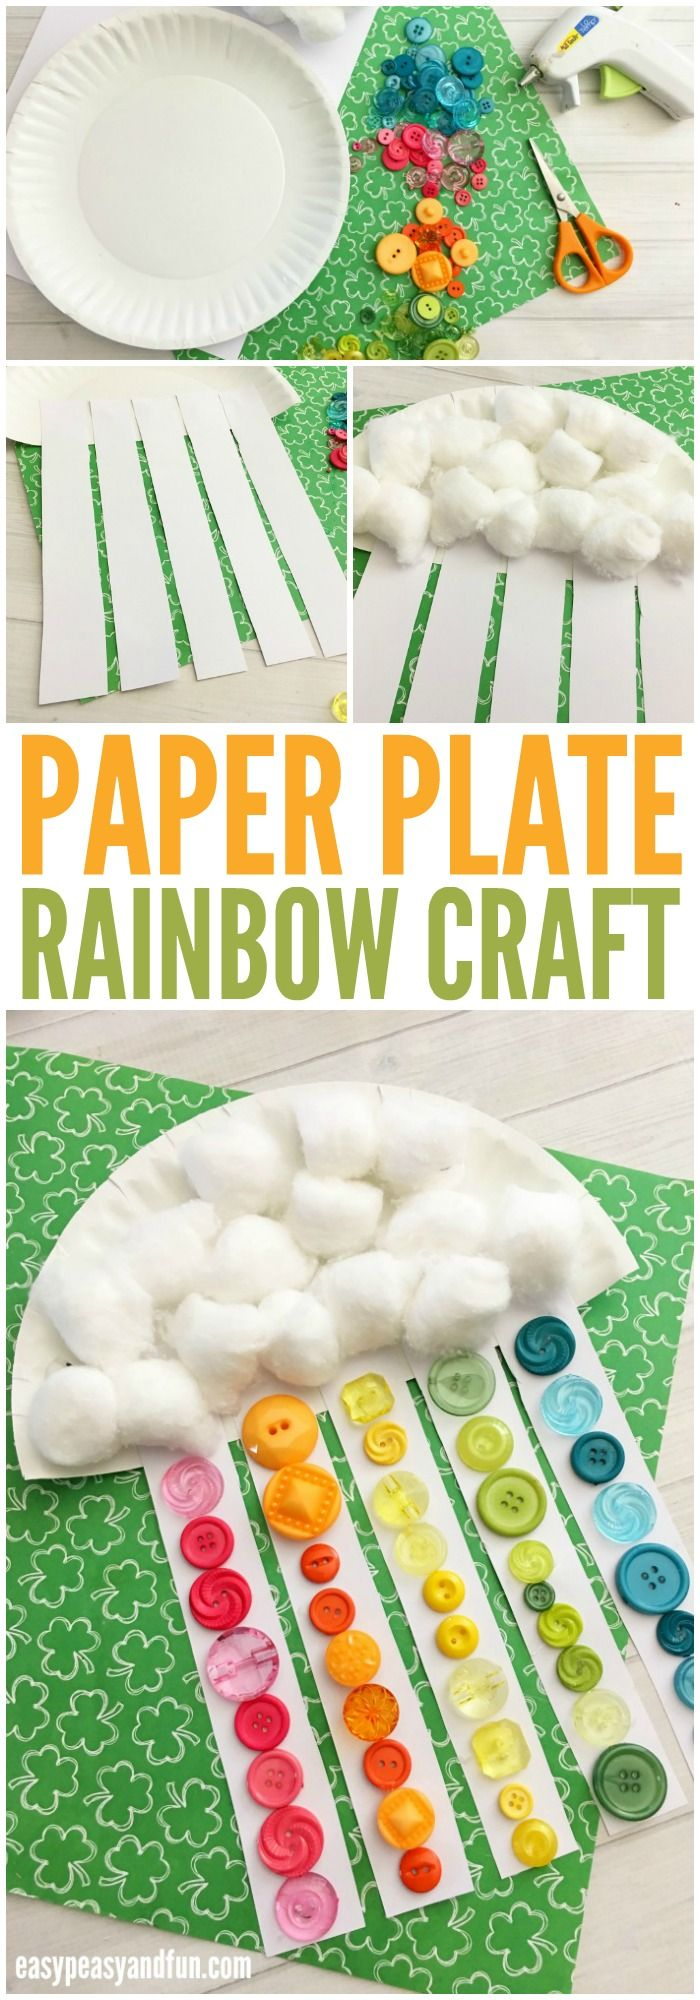 Adorable Paper Plate Rainbow Craft for Kids